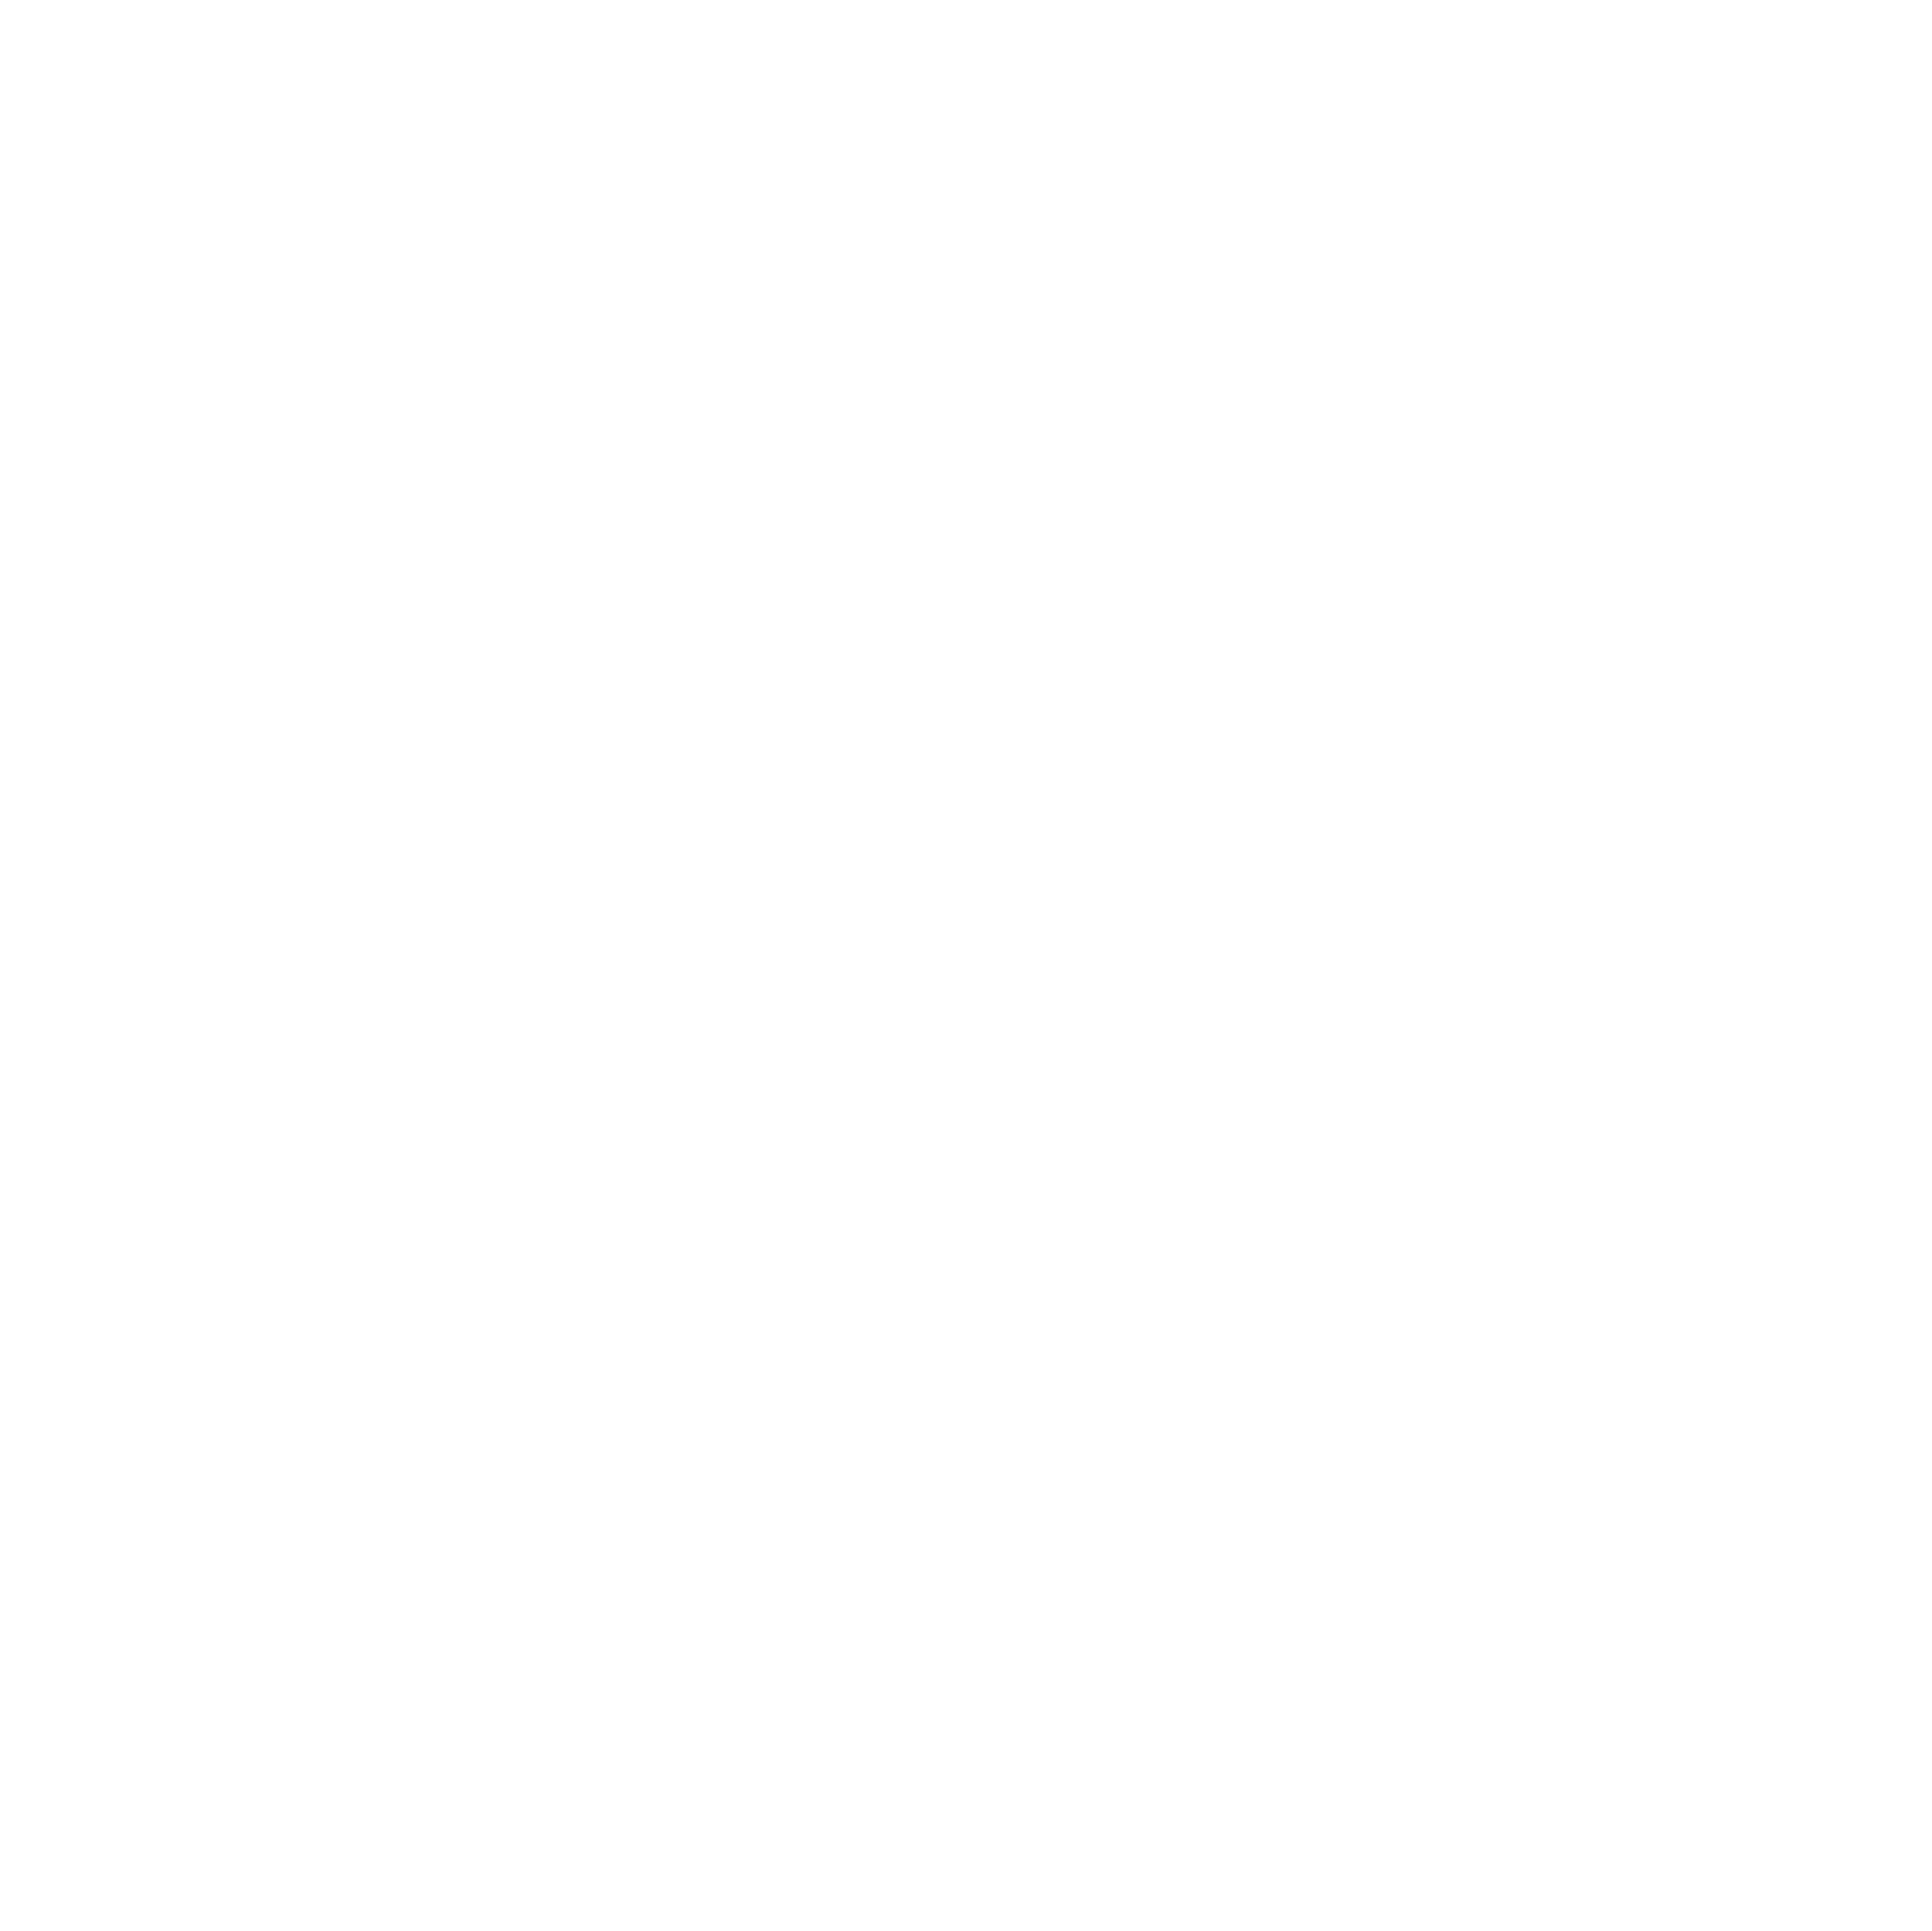 FIT 4 THE FIGHT